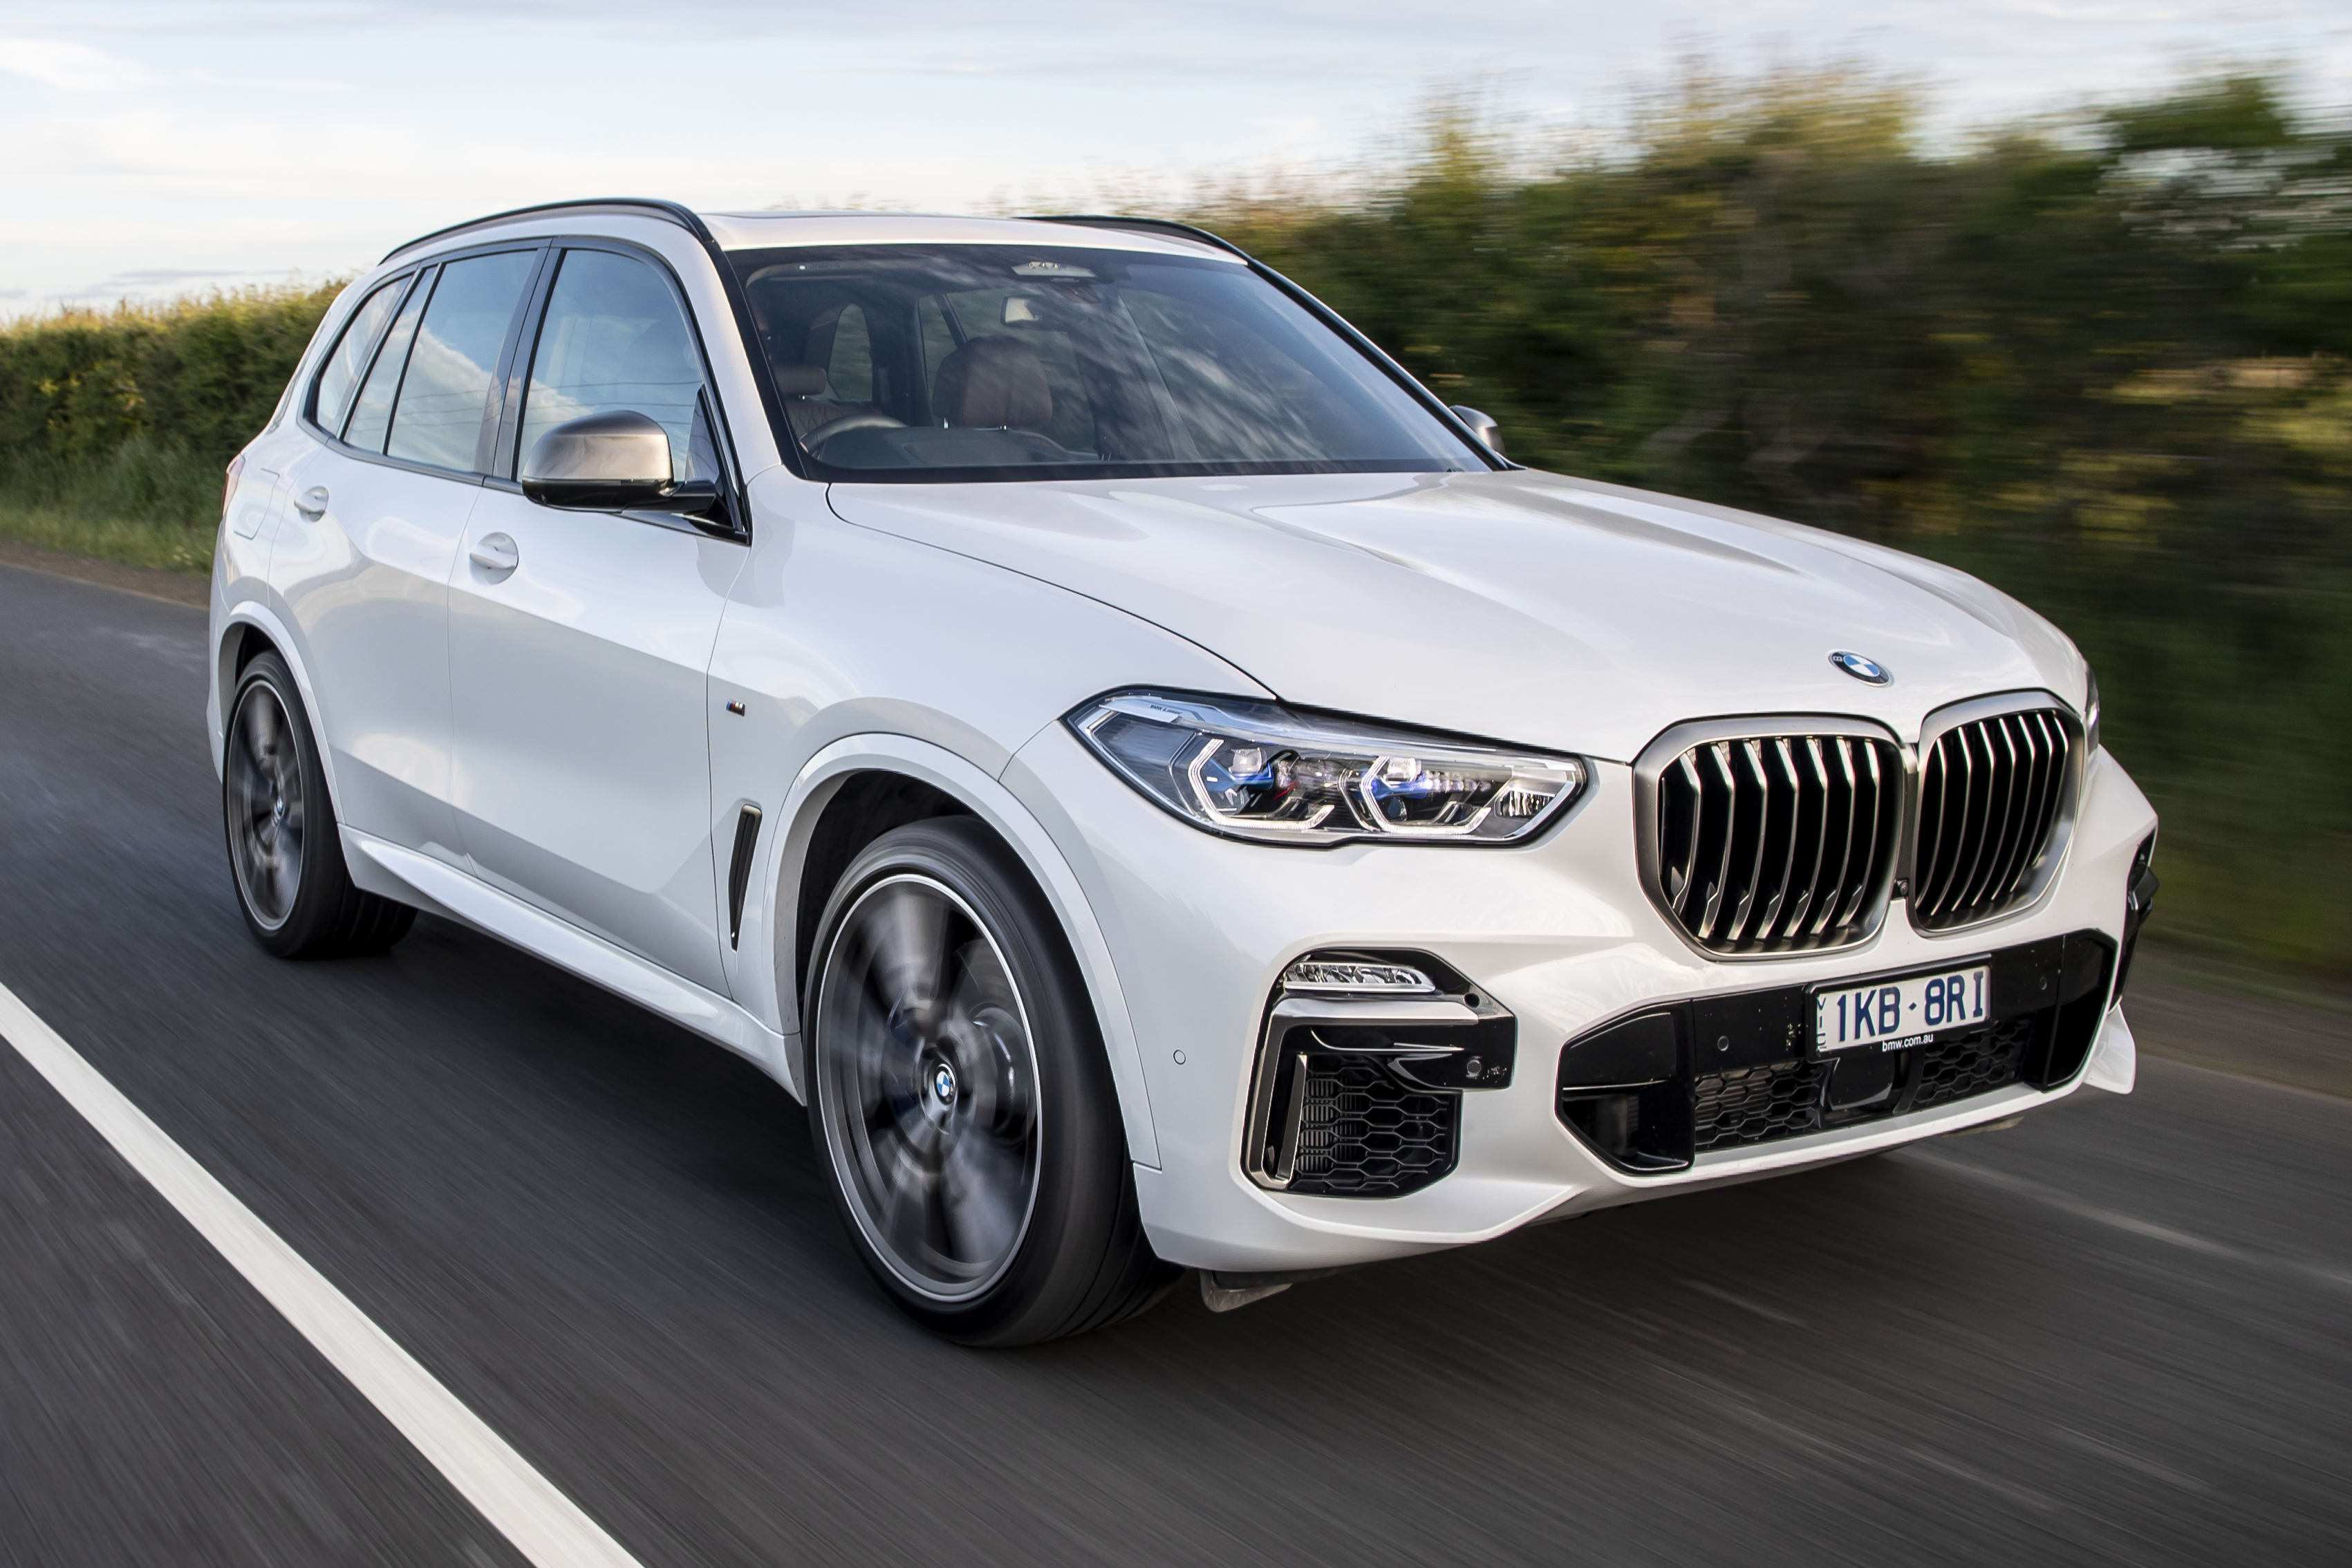 31 Concept of Bmw X5 2019 Performance and New Engine by Bmw X5 2019